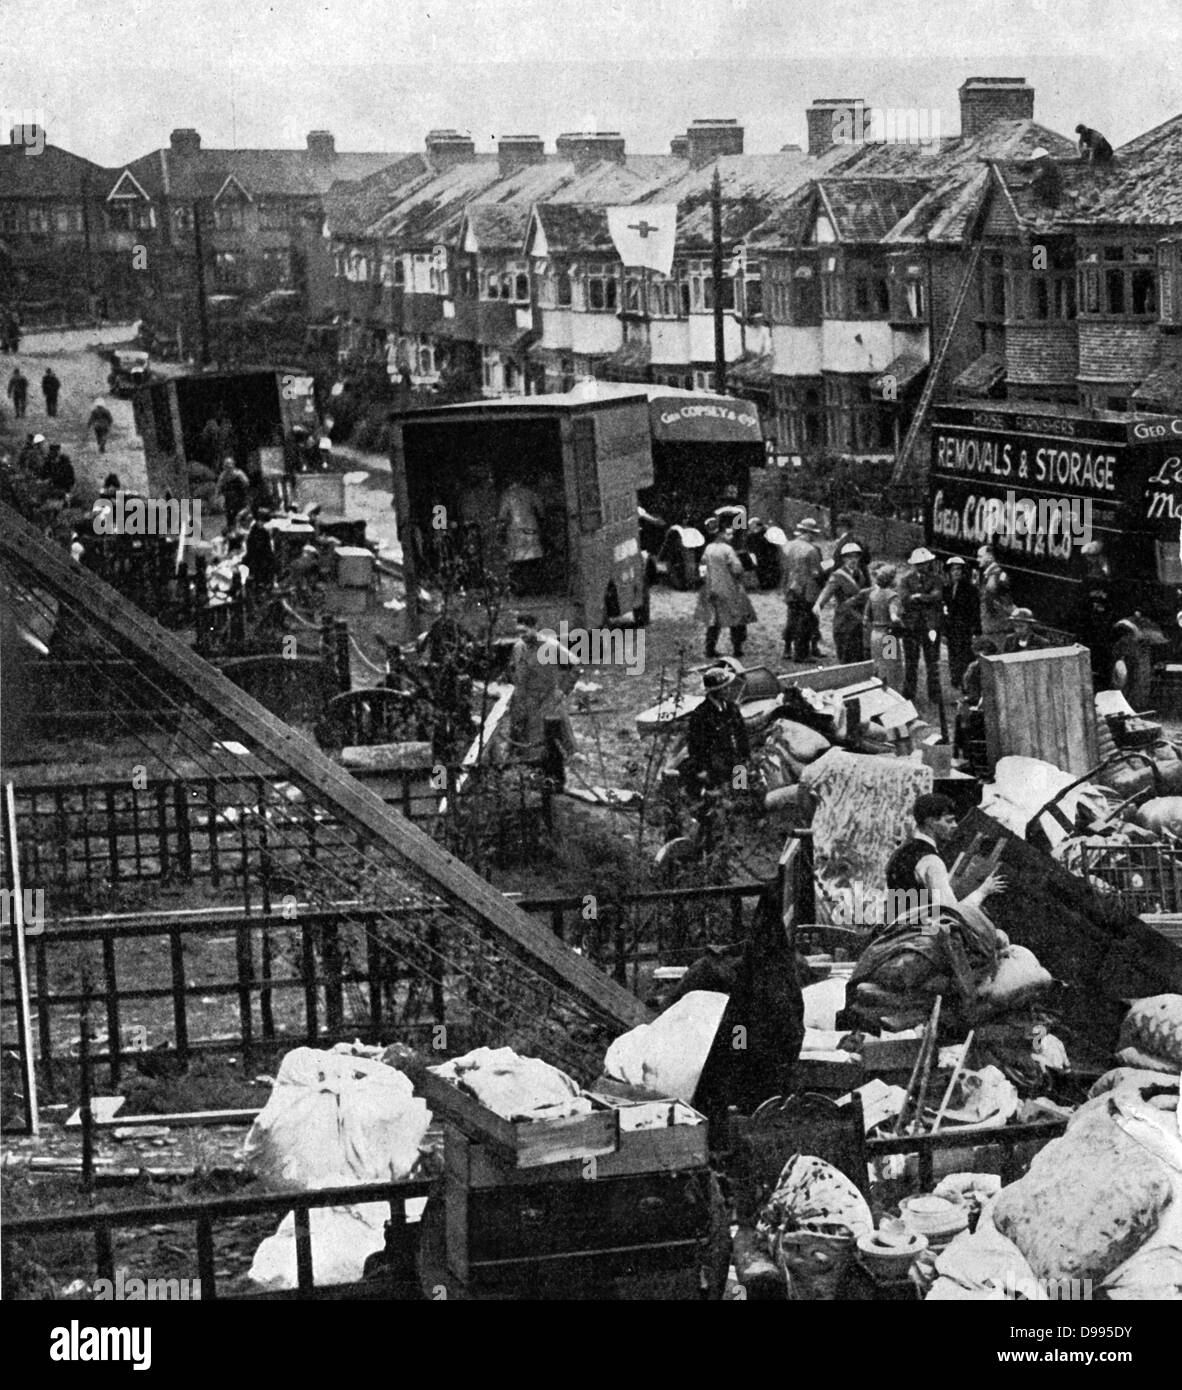 1941 Bombing Black And White Stock Photos Images Alamy Plymouth Pro Street Bomb Damage In A Suburban July 1940 To May Sustained Of British